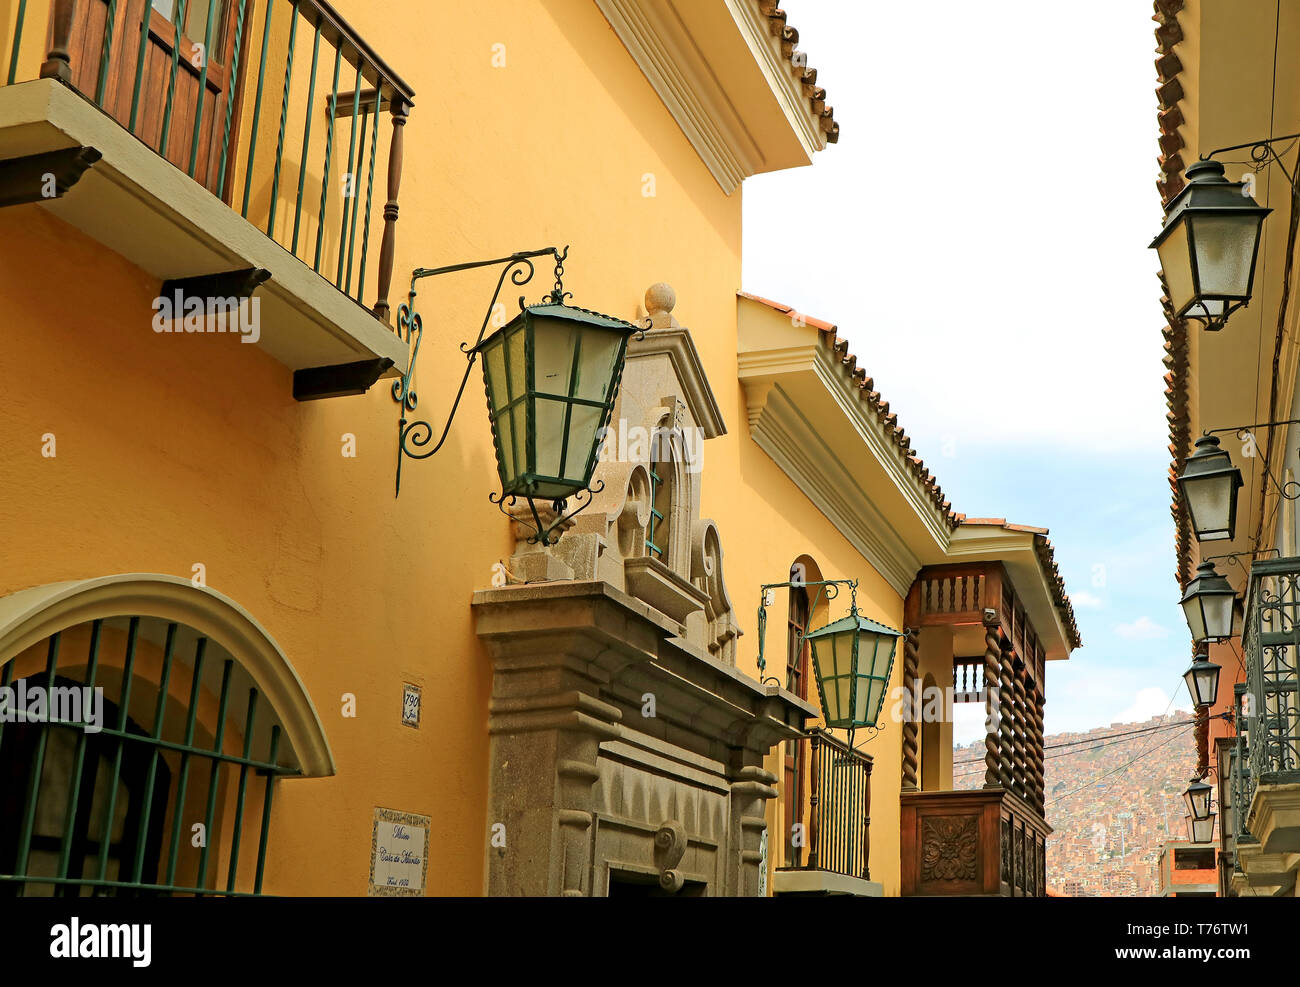 The Historic Colonial Buildings on Jaen Street or Calle Jaen in La Paz, Bolivia - Stock Image